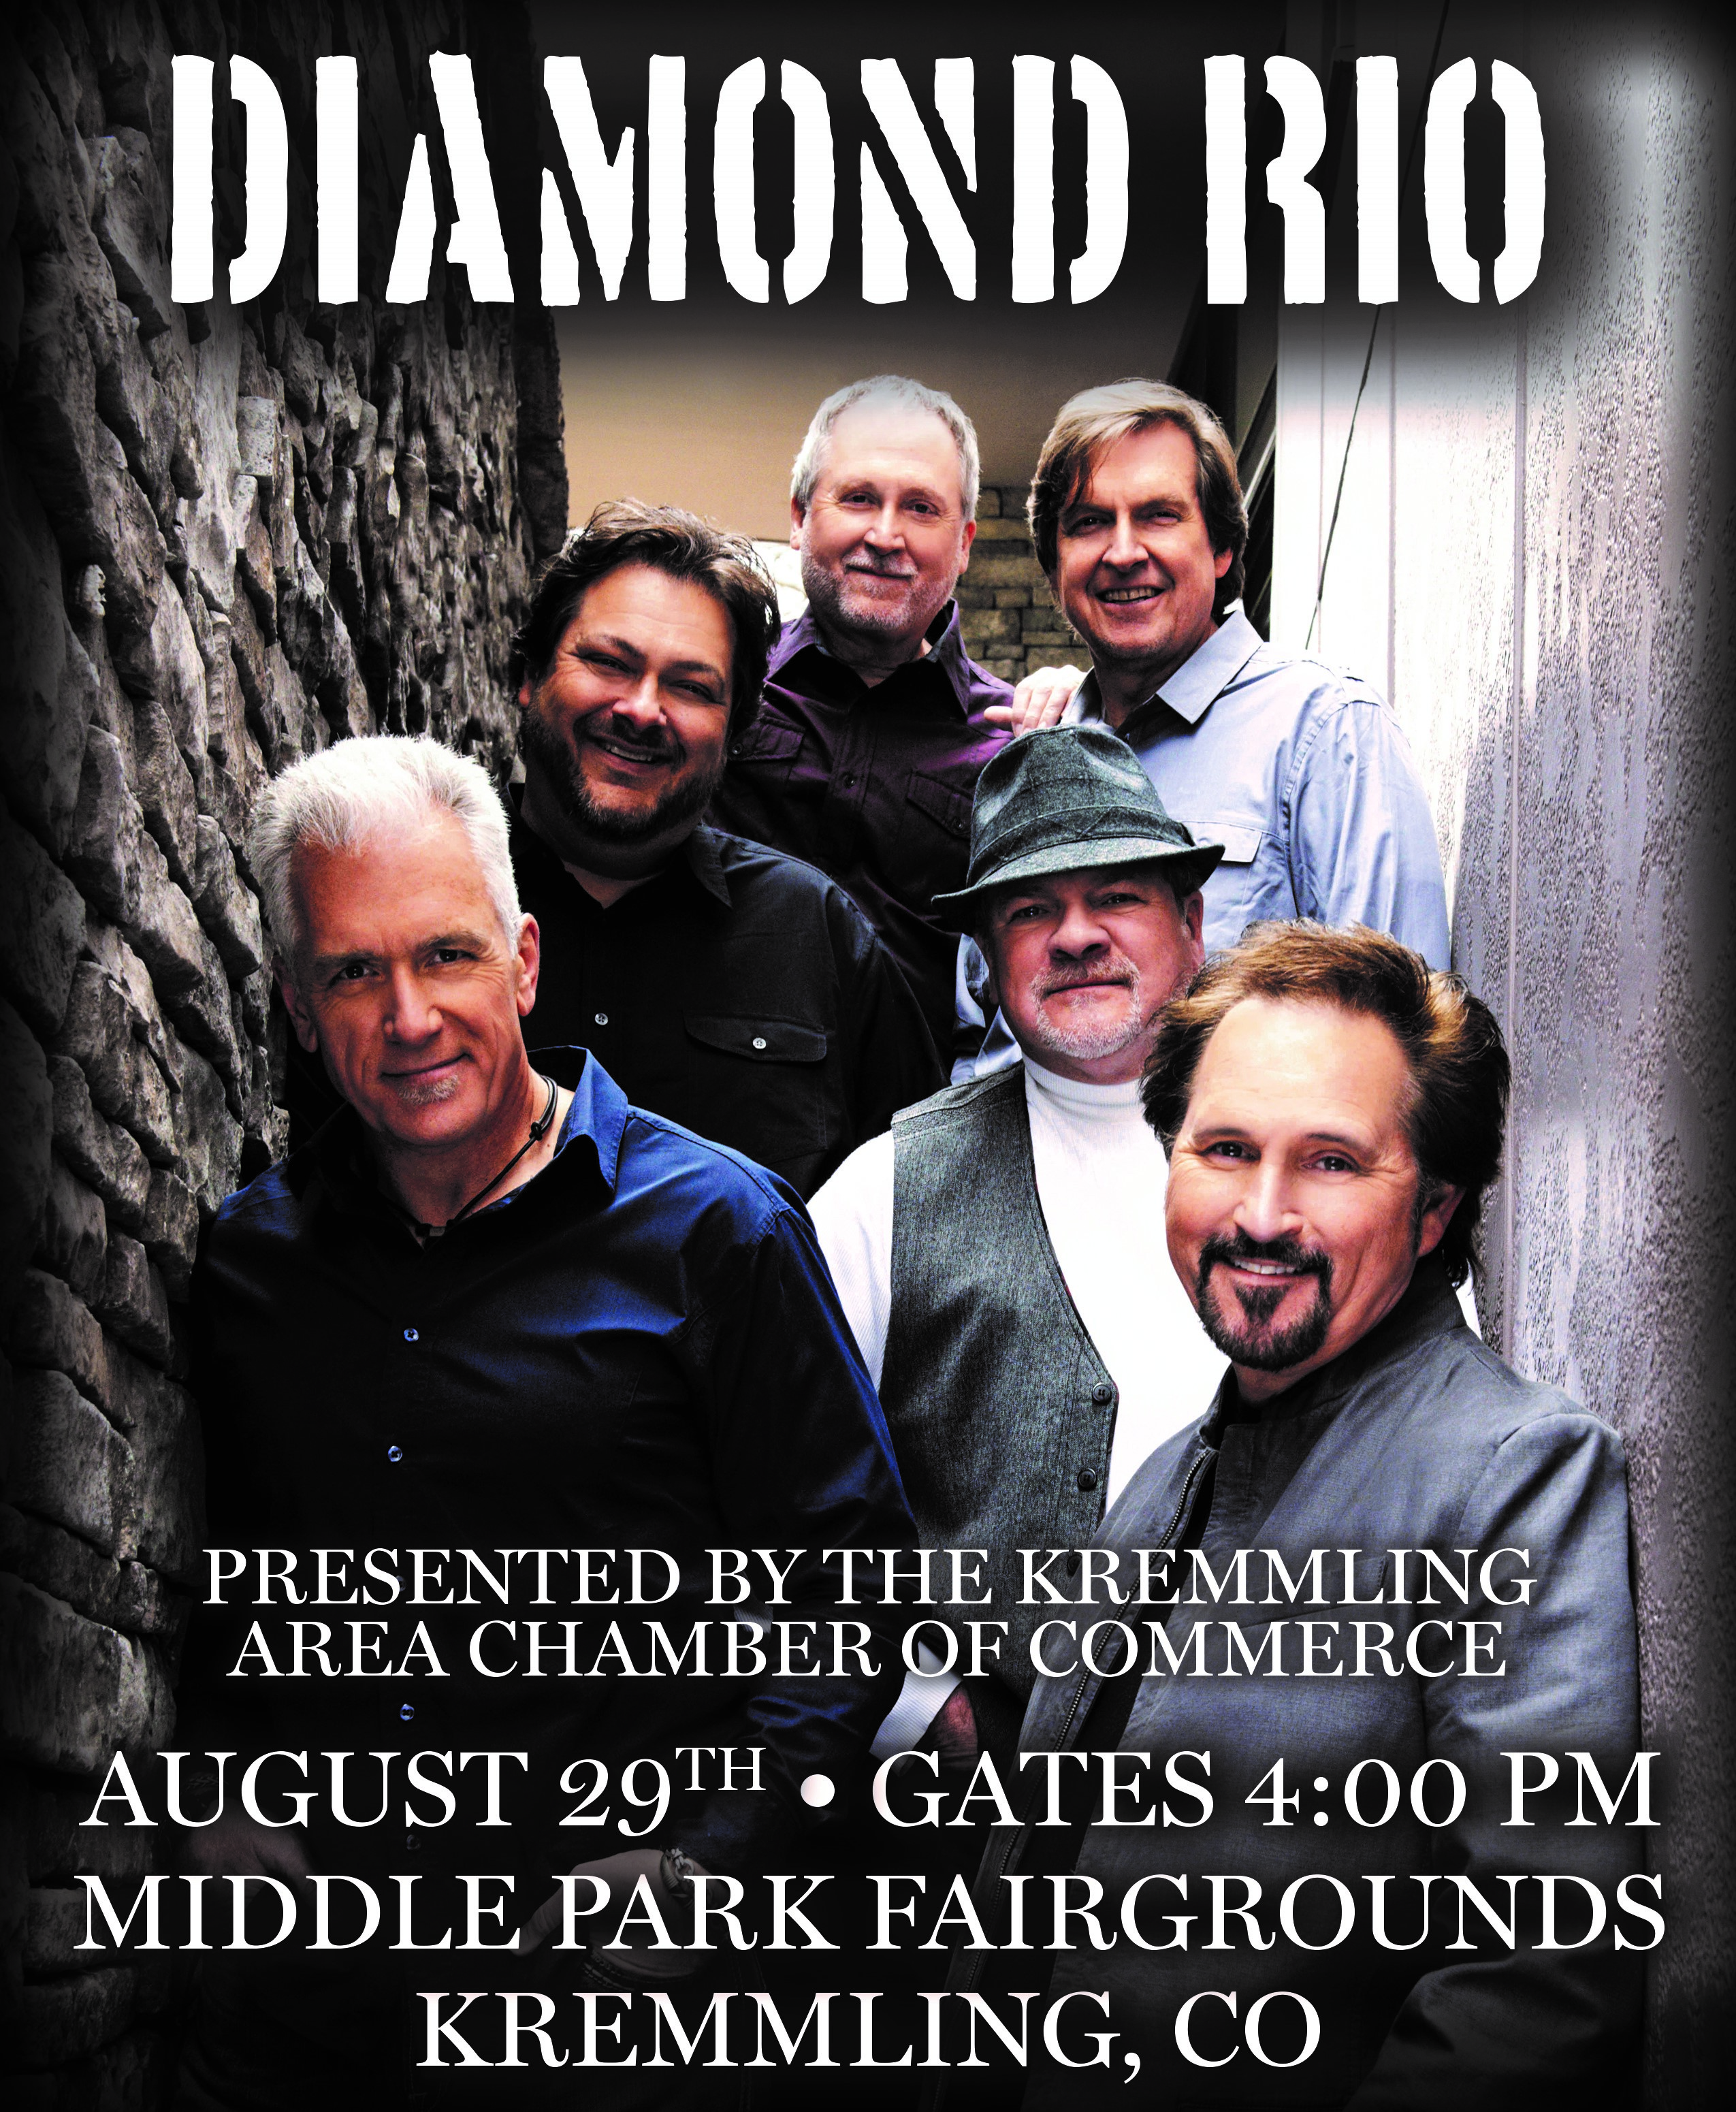 Diamond-Rio---Kremmling.-CO---8.29---Admat-(3).jpg